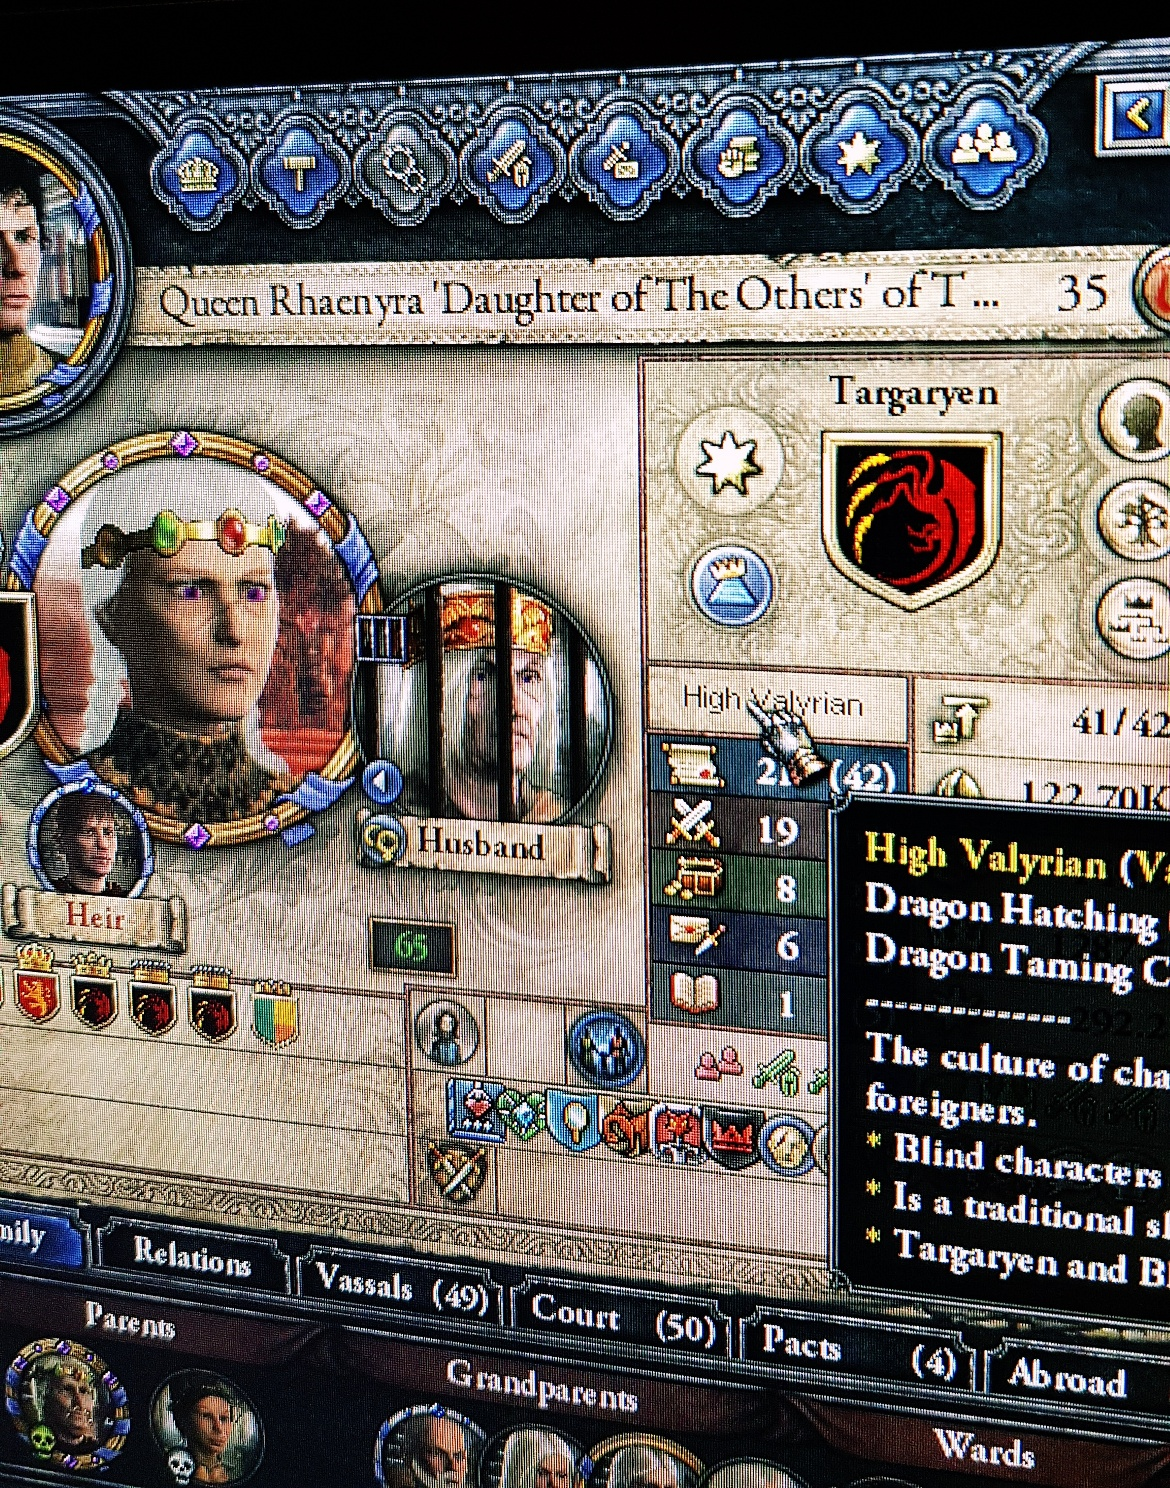 Playing the Game of Thrones mod for Crusader Kings - January 2018 Monthly Recap by BeckyBecky Blogs